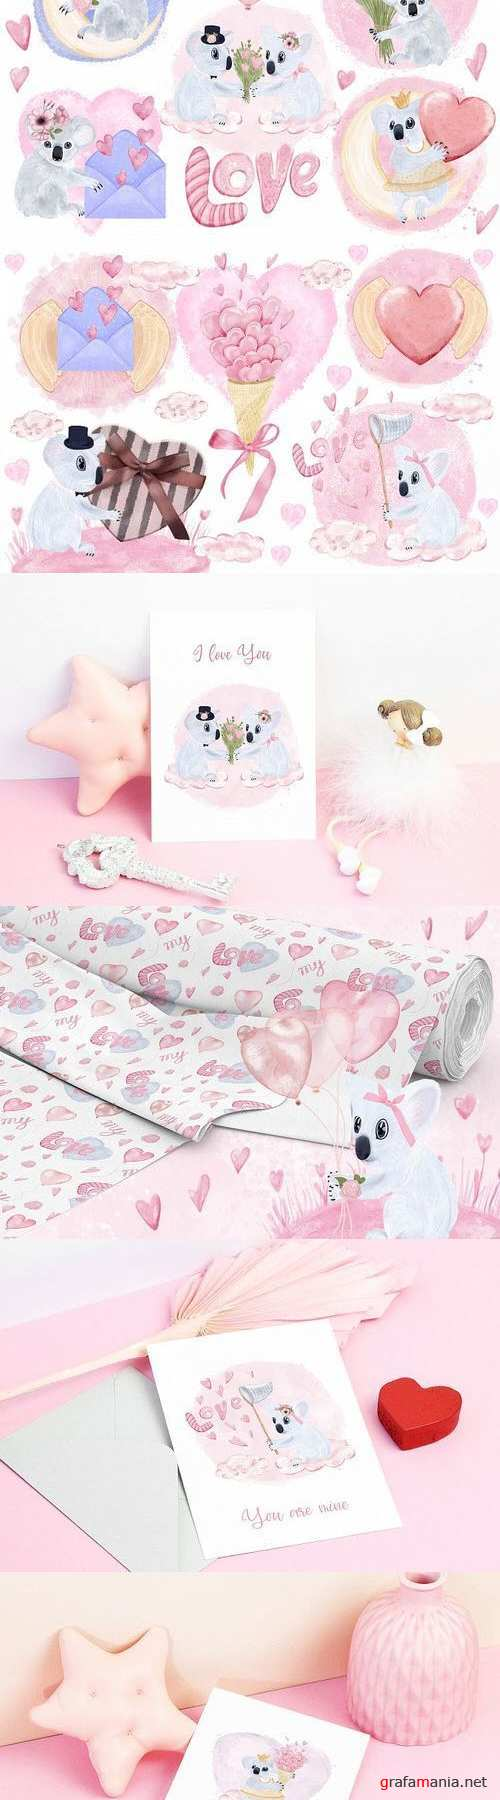 Koalas In Love Decoration Bundle - 418410